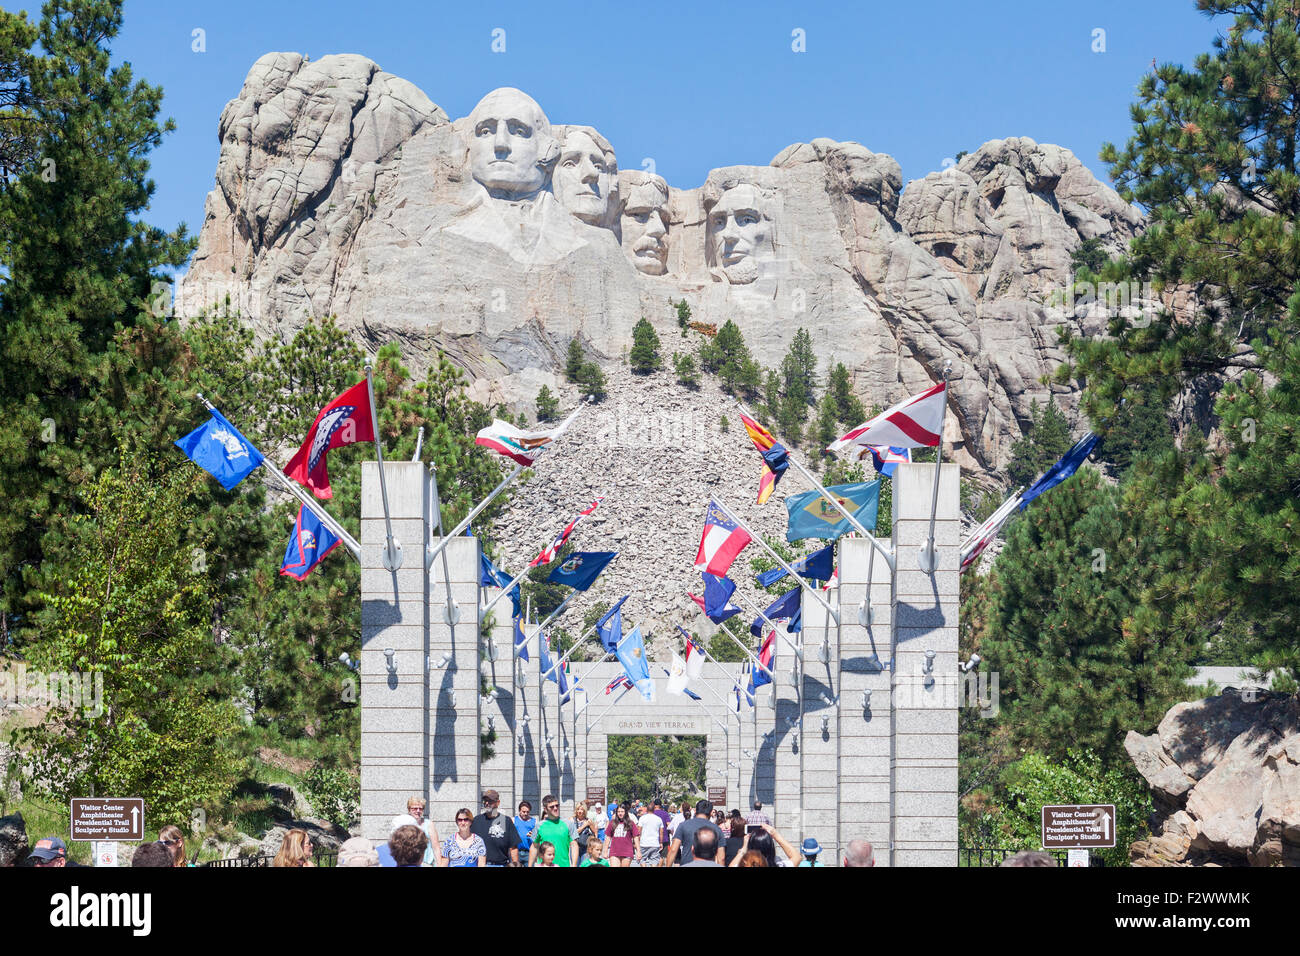 A view of visitors, tourists, families seeing the Mount Rushmore National Memorial, South Dakota. - Stock Image